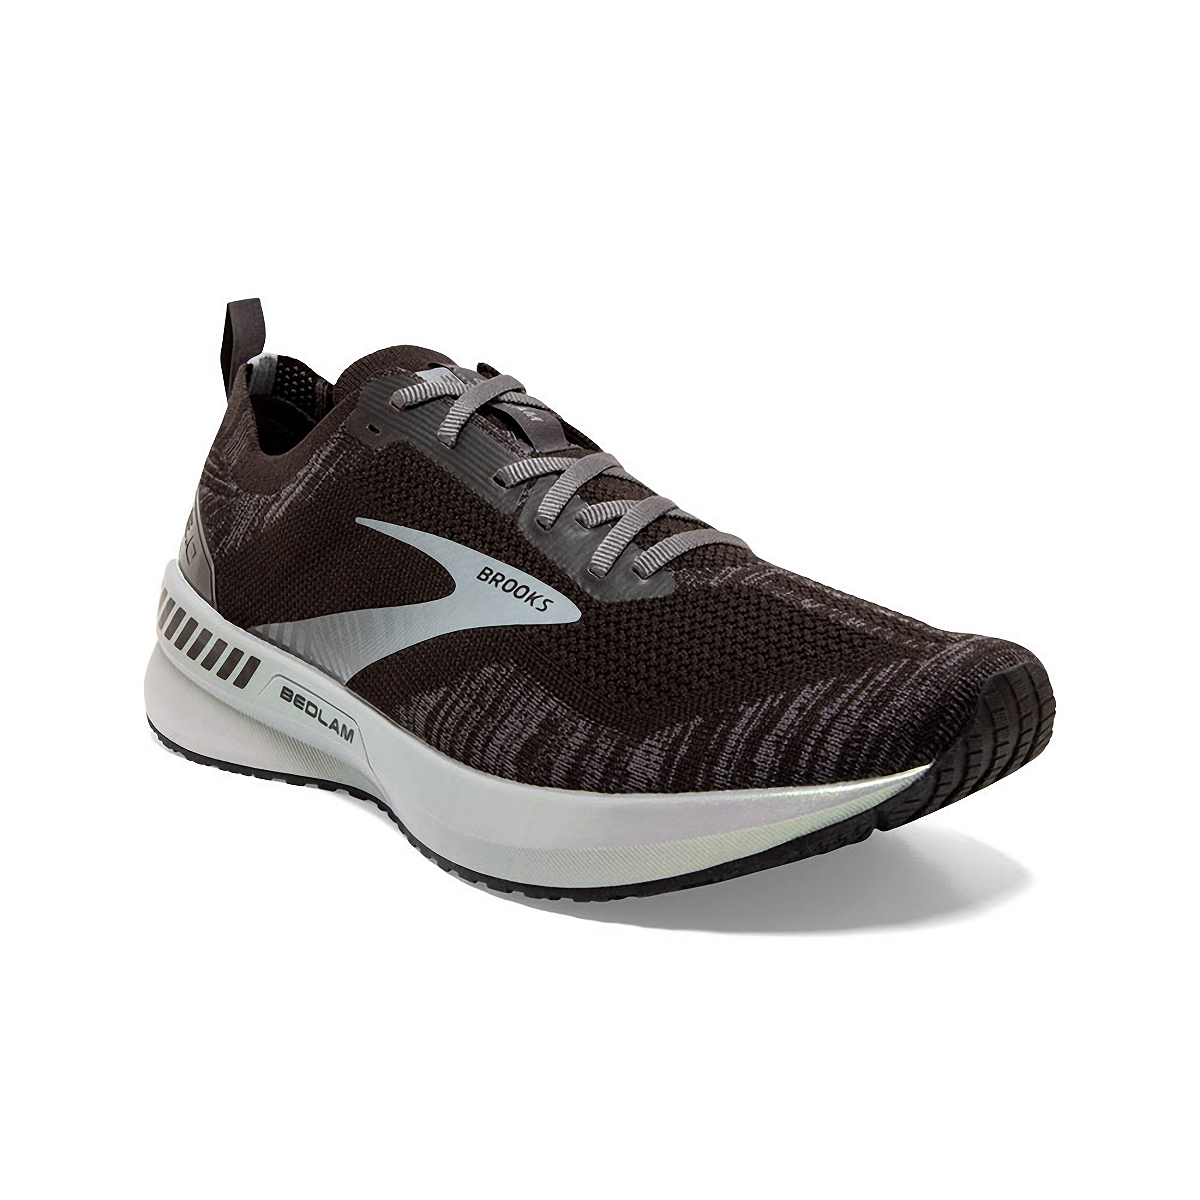 Men's Brooks Bedlam 3 Running Shoe - Color: Black/Blackened - Size: 8.5 - Width: Regular, Black/Blackened, large, image 3